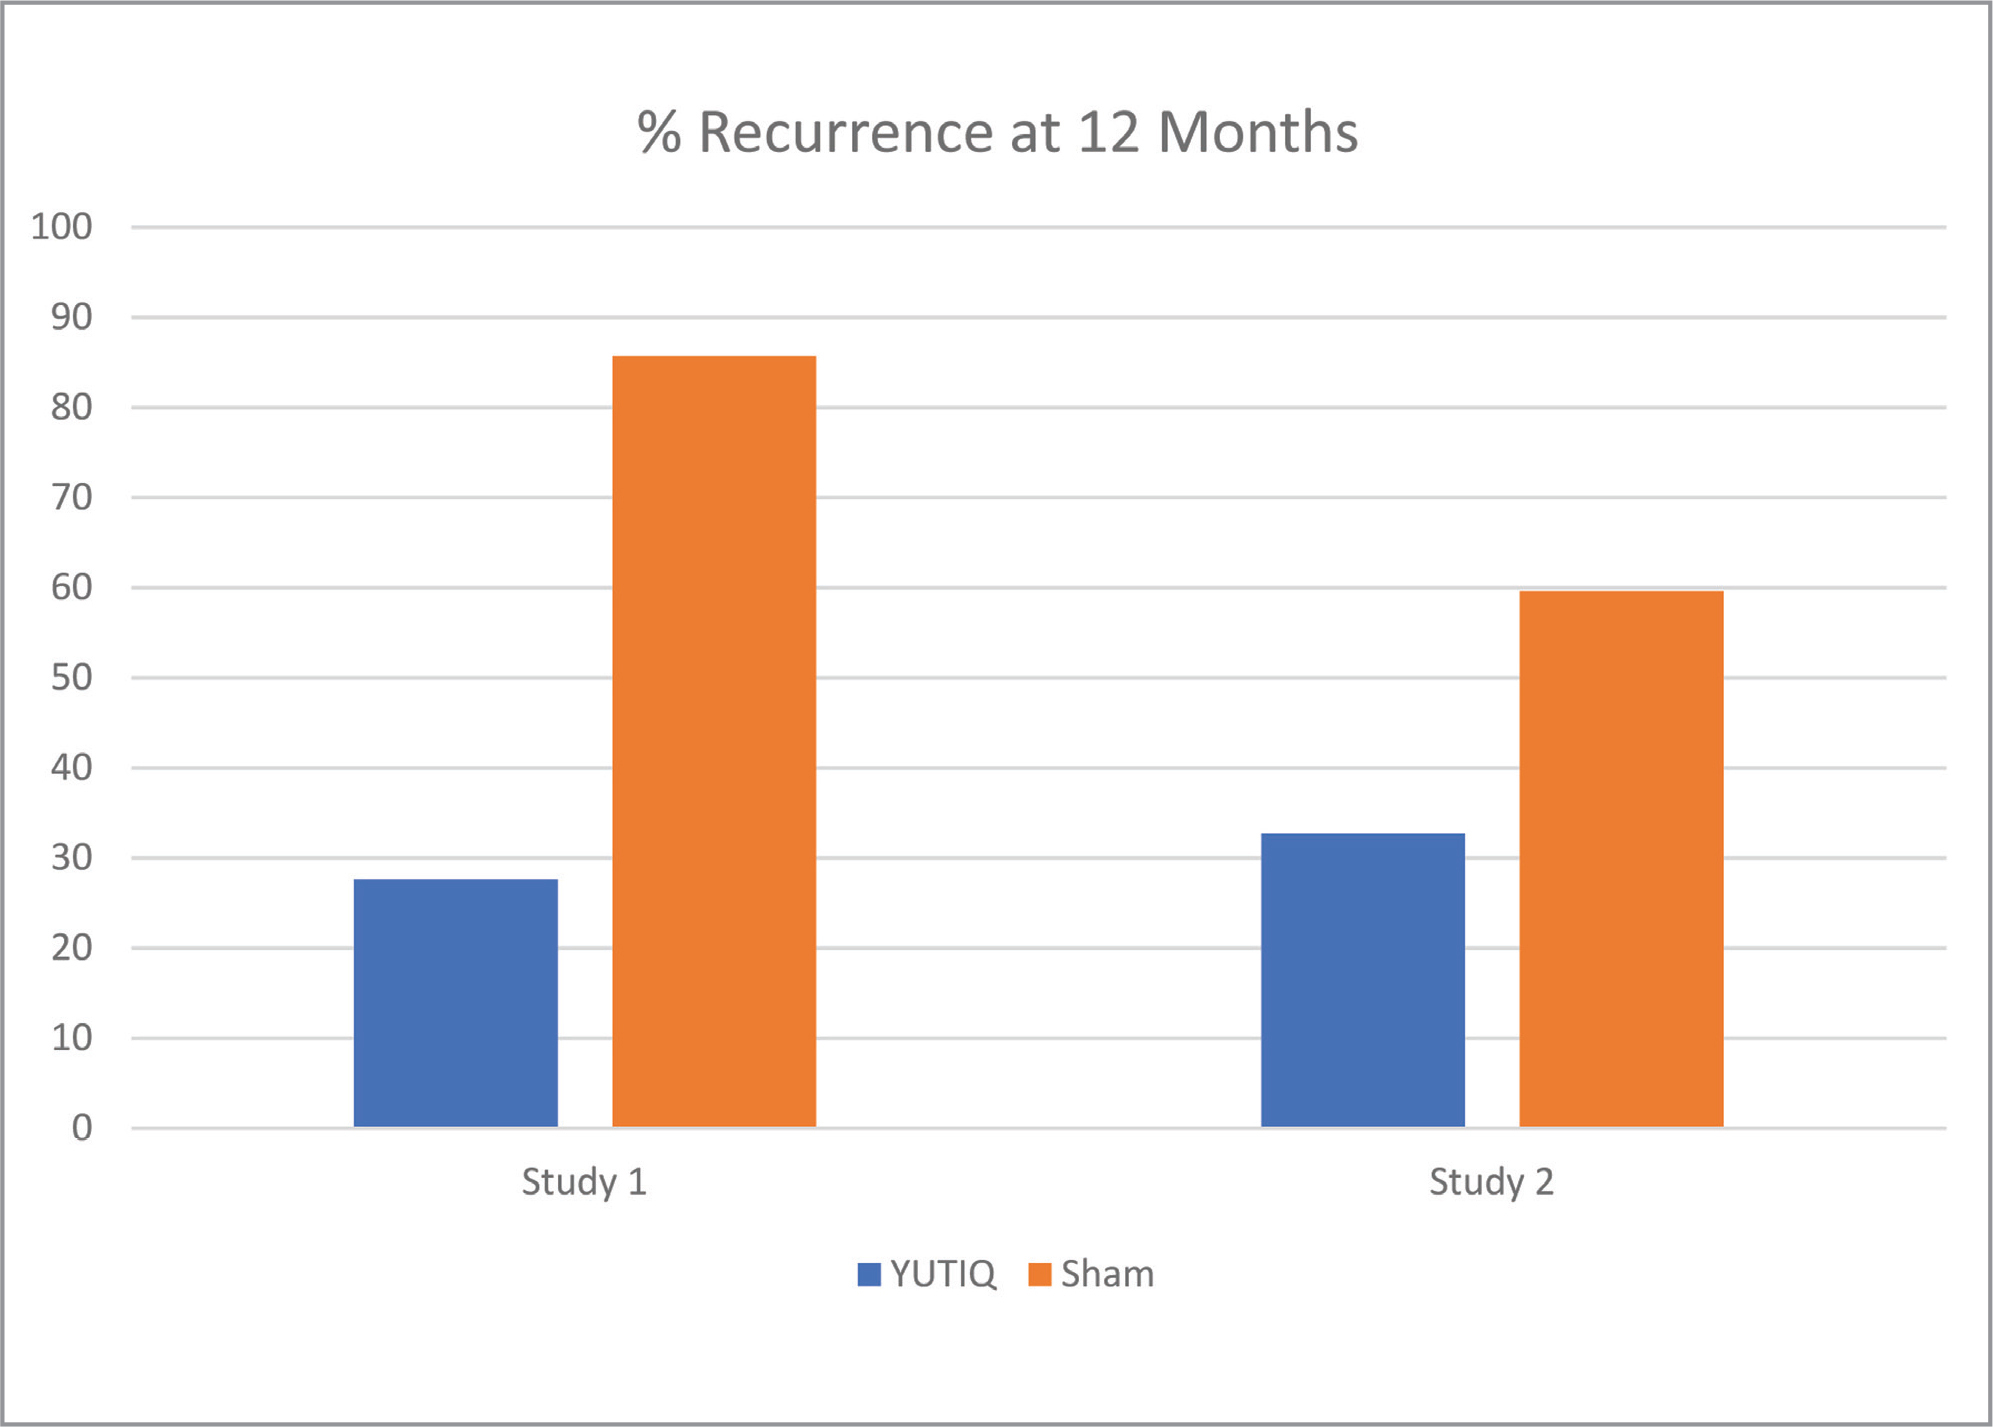 Twelve-month recurrence rate after YUTIQ versus sham for two parallel phase 3 studies by EyePoint Pharmaceuticals.8